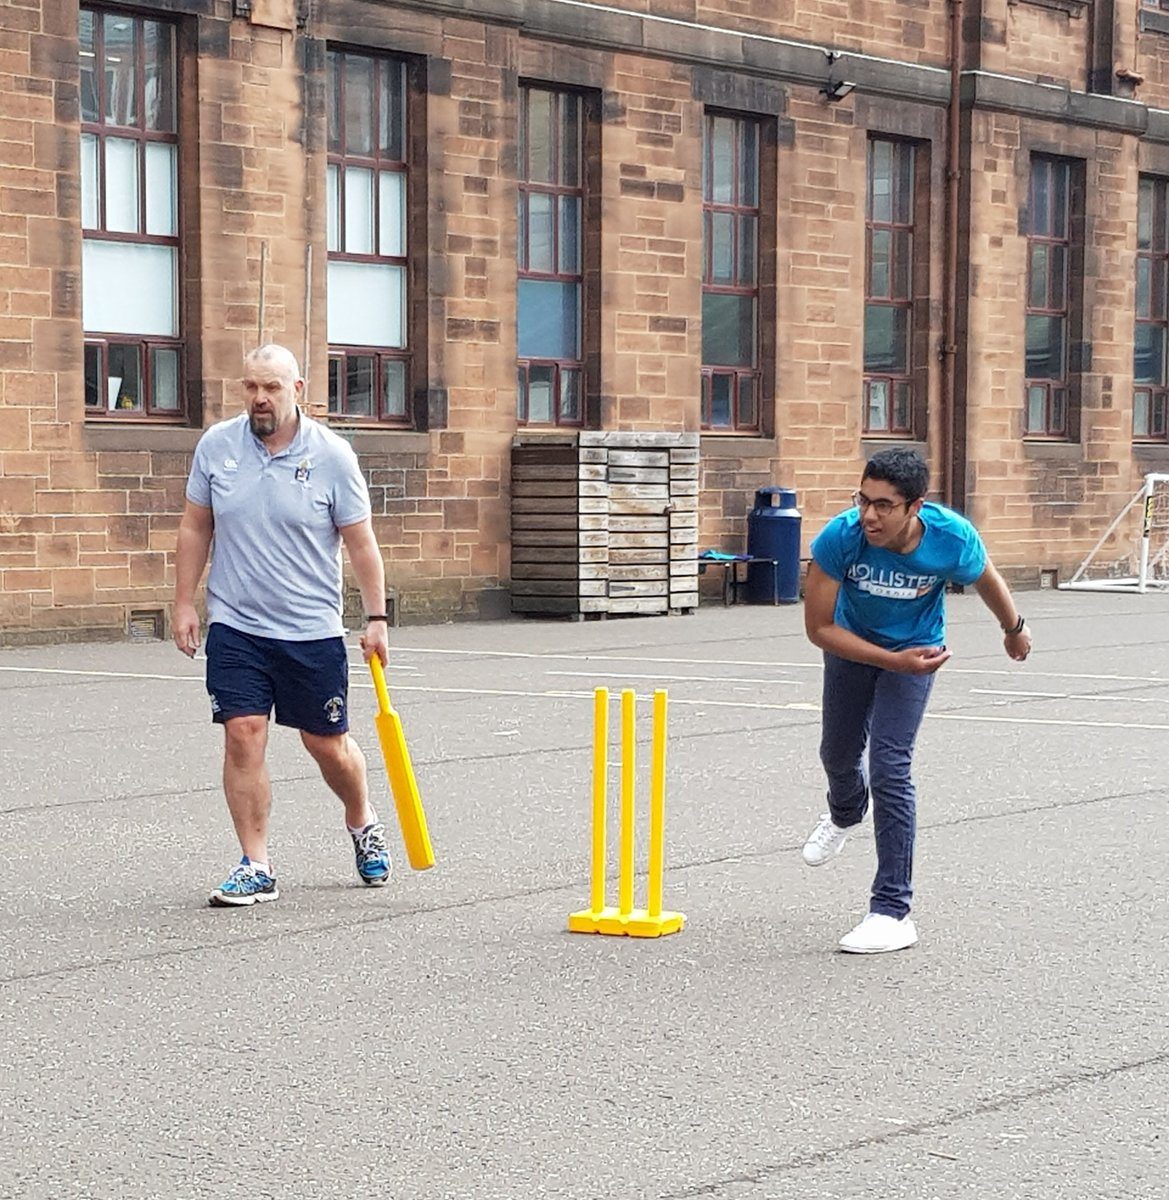 The key worker children enjoyed a game of cricket with Mr Dewar in the playground today. #WeAreHutchie https://t.co/64roaOMJJw